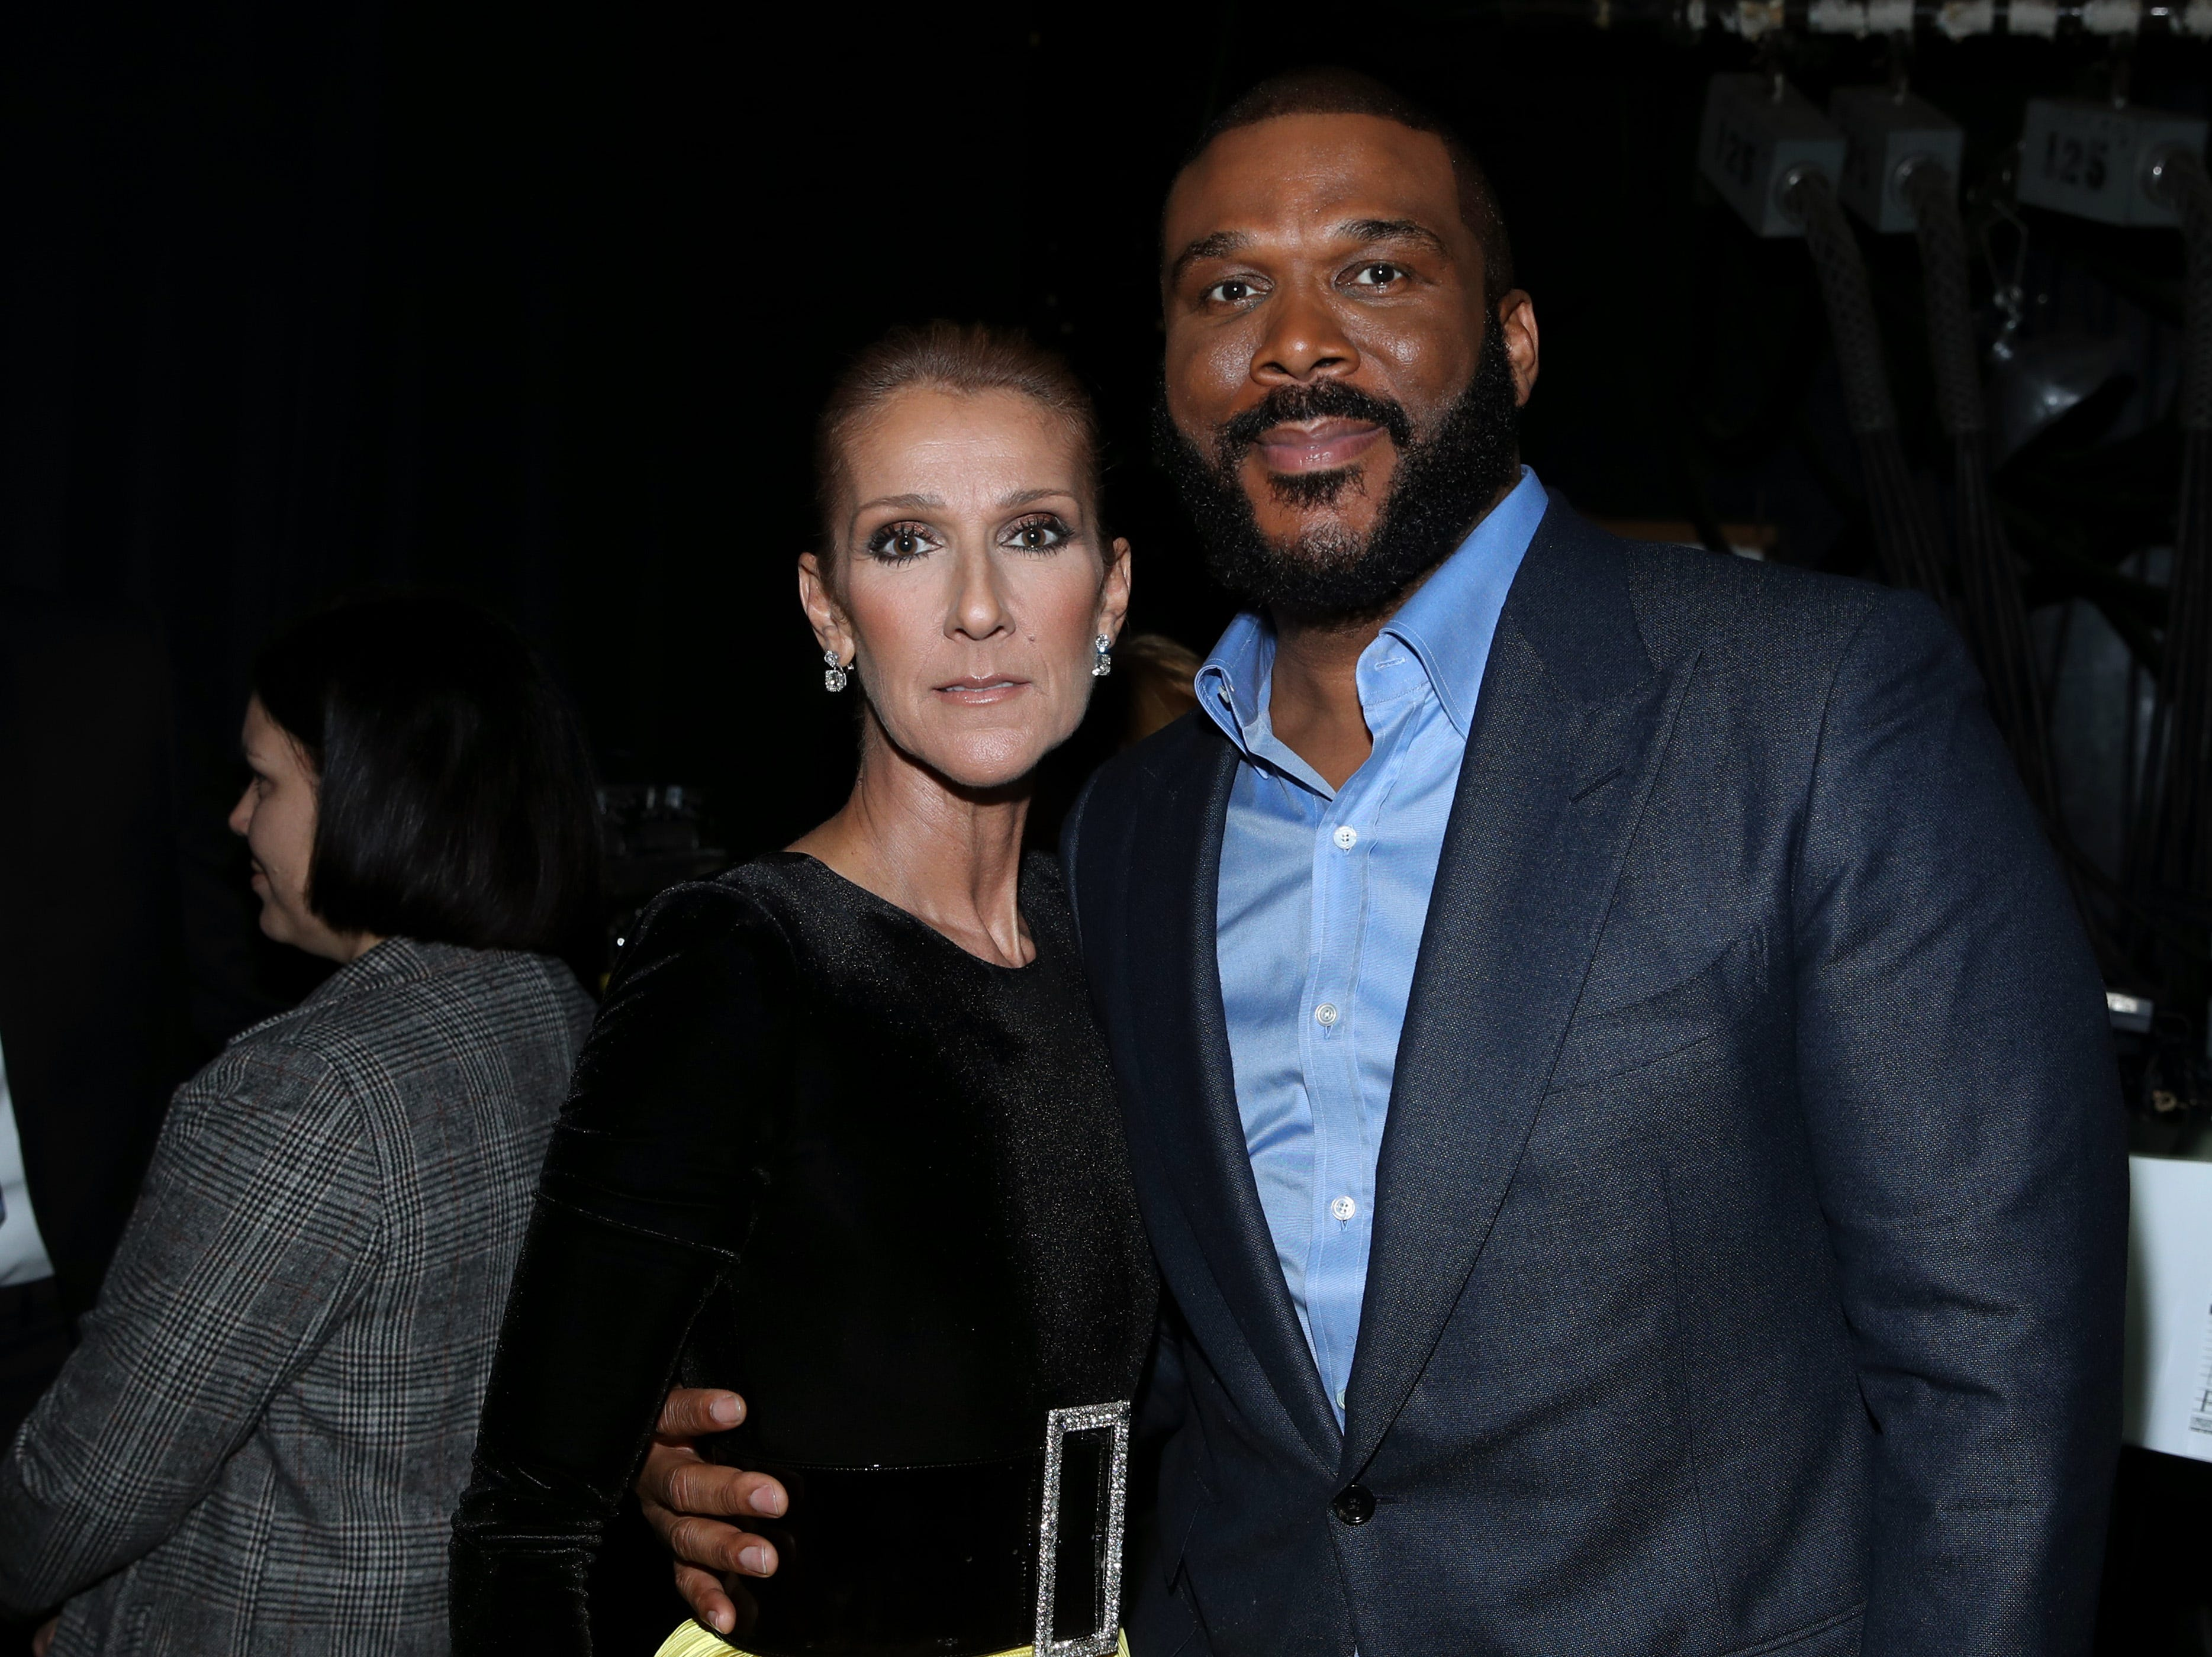 """LOS ANGELES, CA - JANUARY 13:  Celine Dion and Tyler Perry attend """"Aretha! A Grammy Celebration For the Queen Of Soul"""" at the Shrine Auditorium on Jan. 13, 2019, in Los Angeles, Calif."""